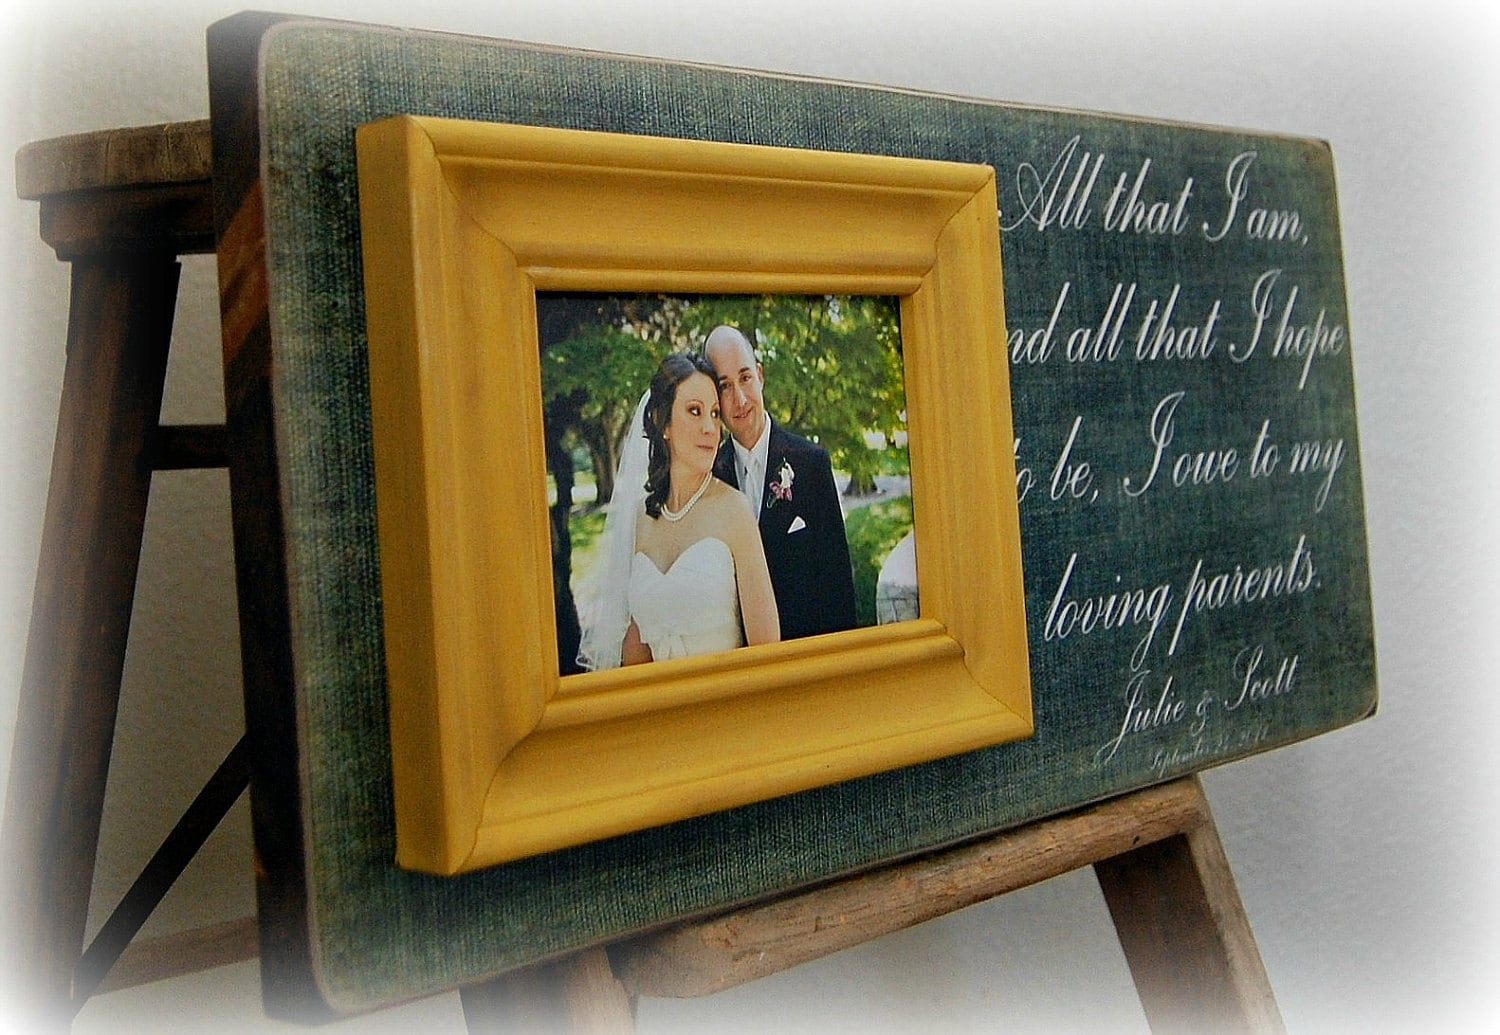 Wedding Gifts For Parents Photo Frames : Wedding Gifts For Parents Personalized Picture Frame Custom